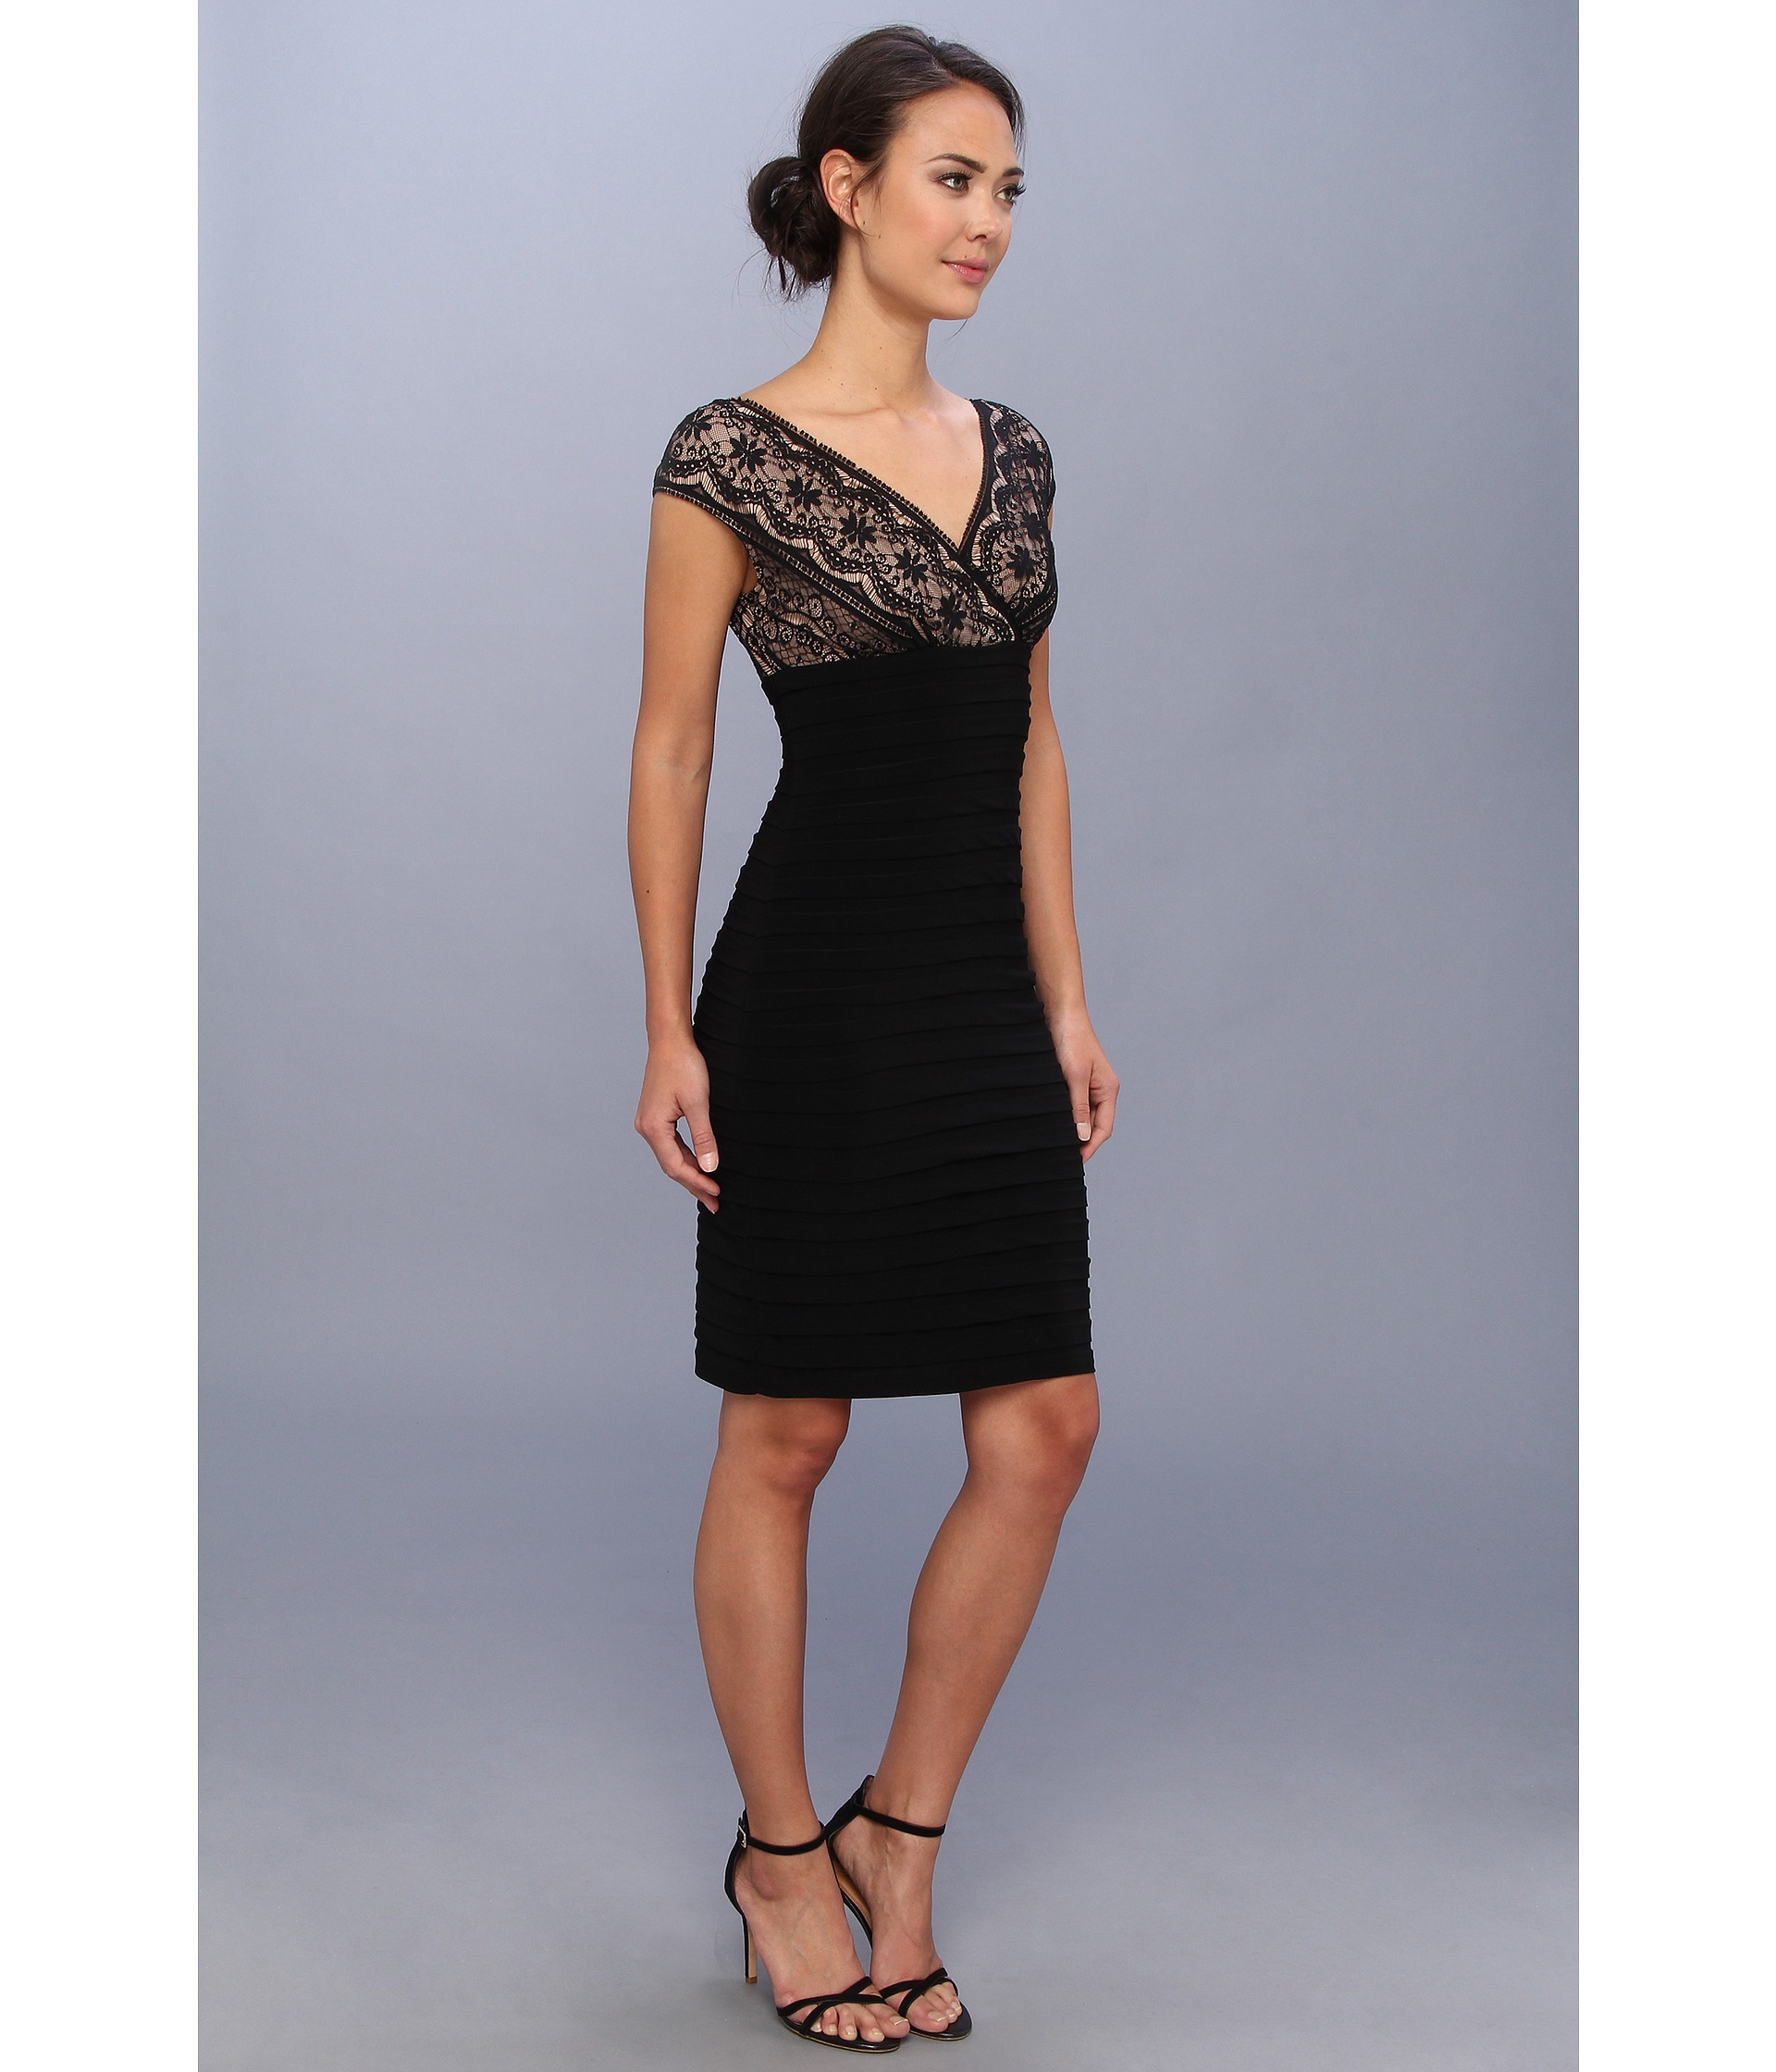 0e7bf8cb Gallery. Previously sold at: Zappos · Women's Adrianna Papell Lace Dress